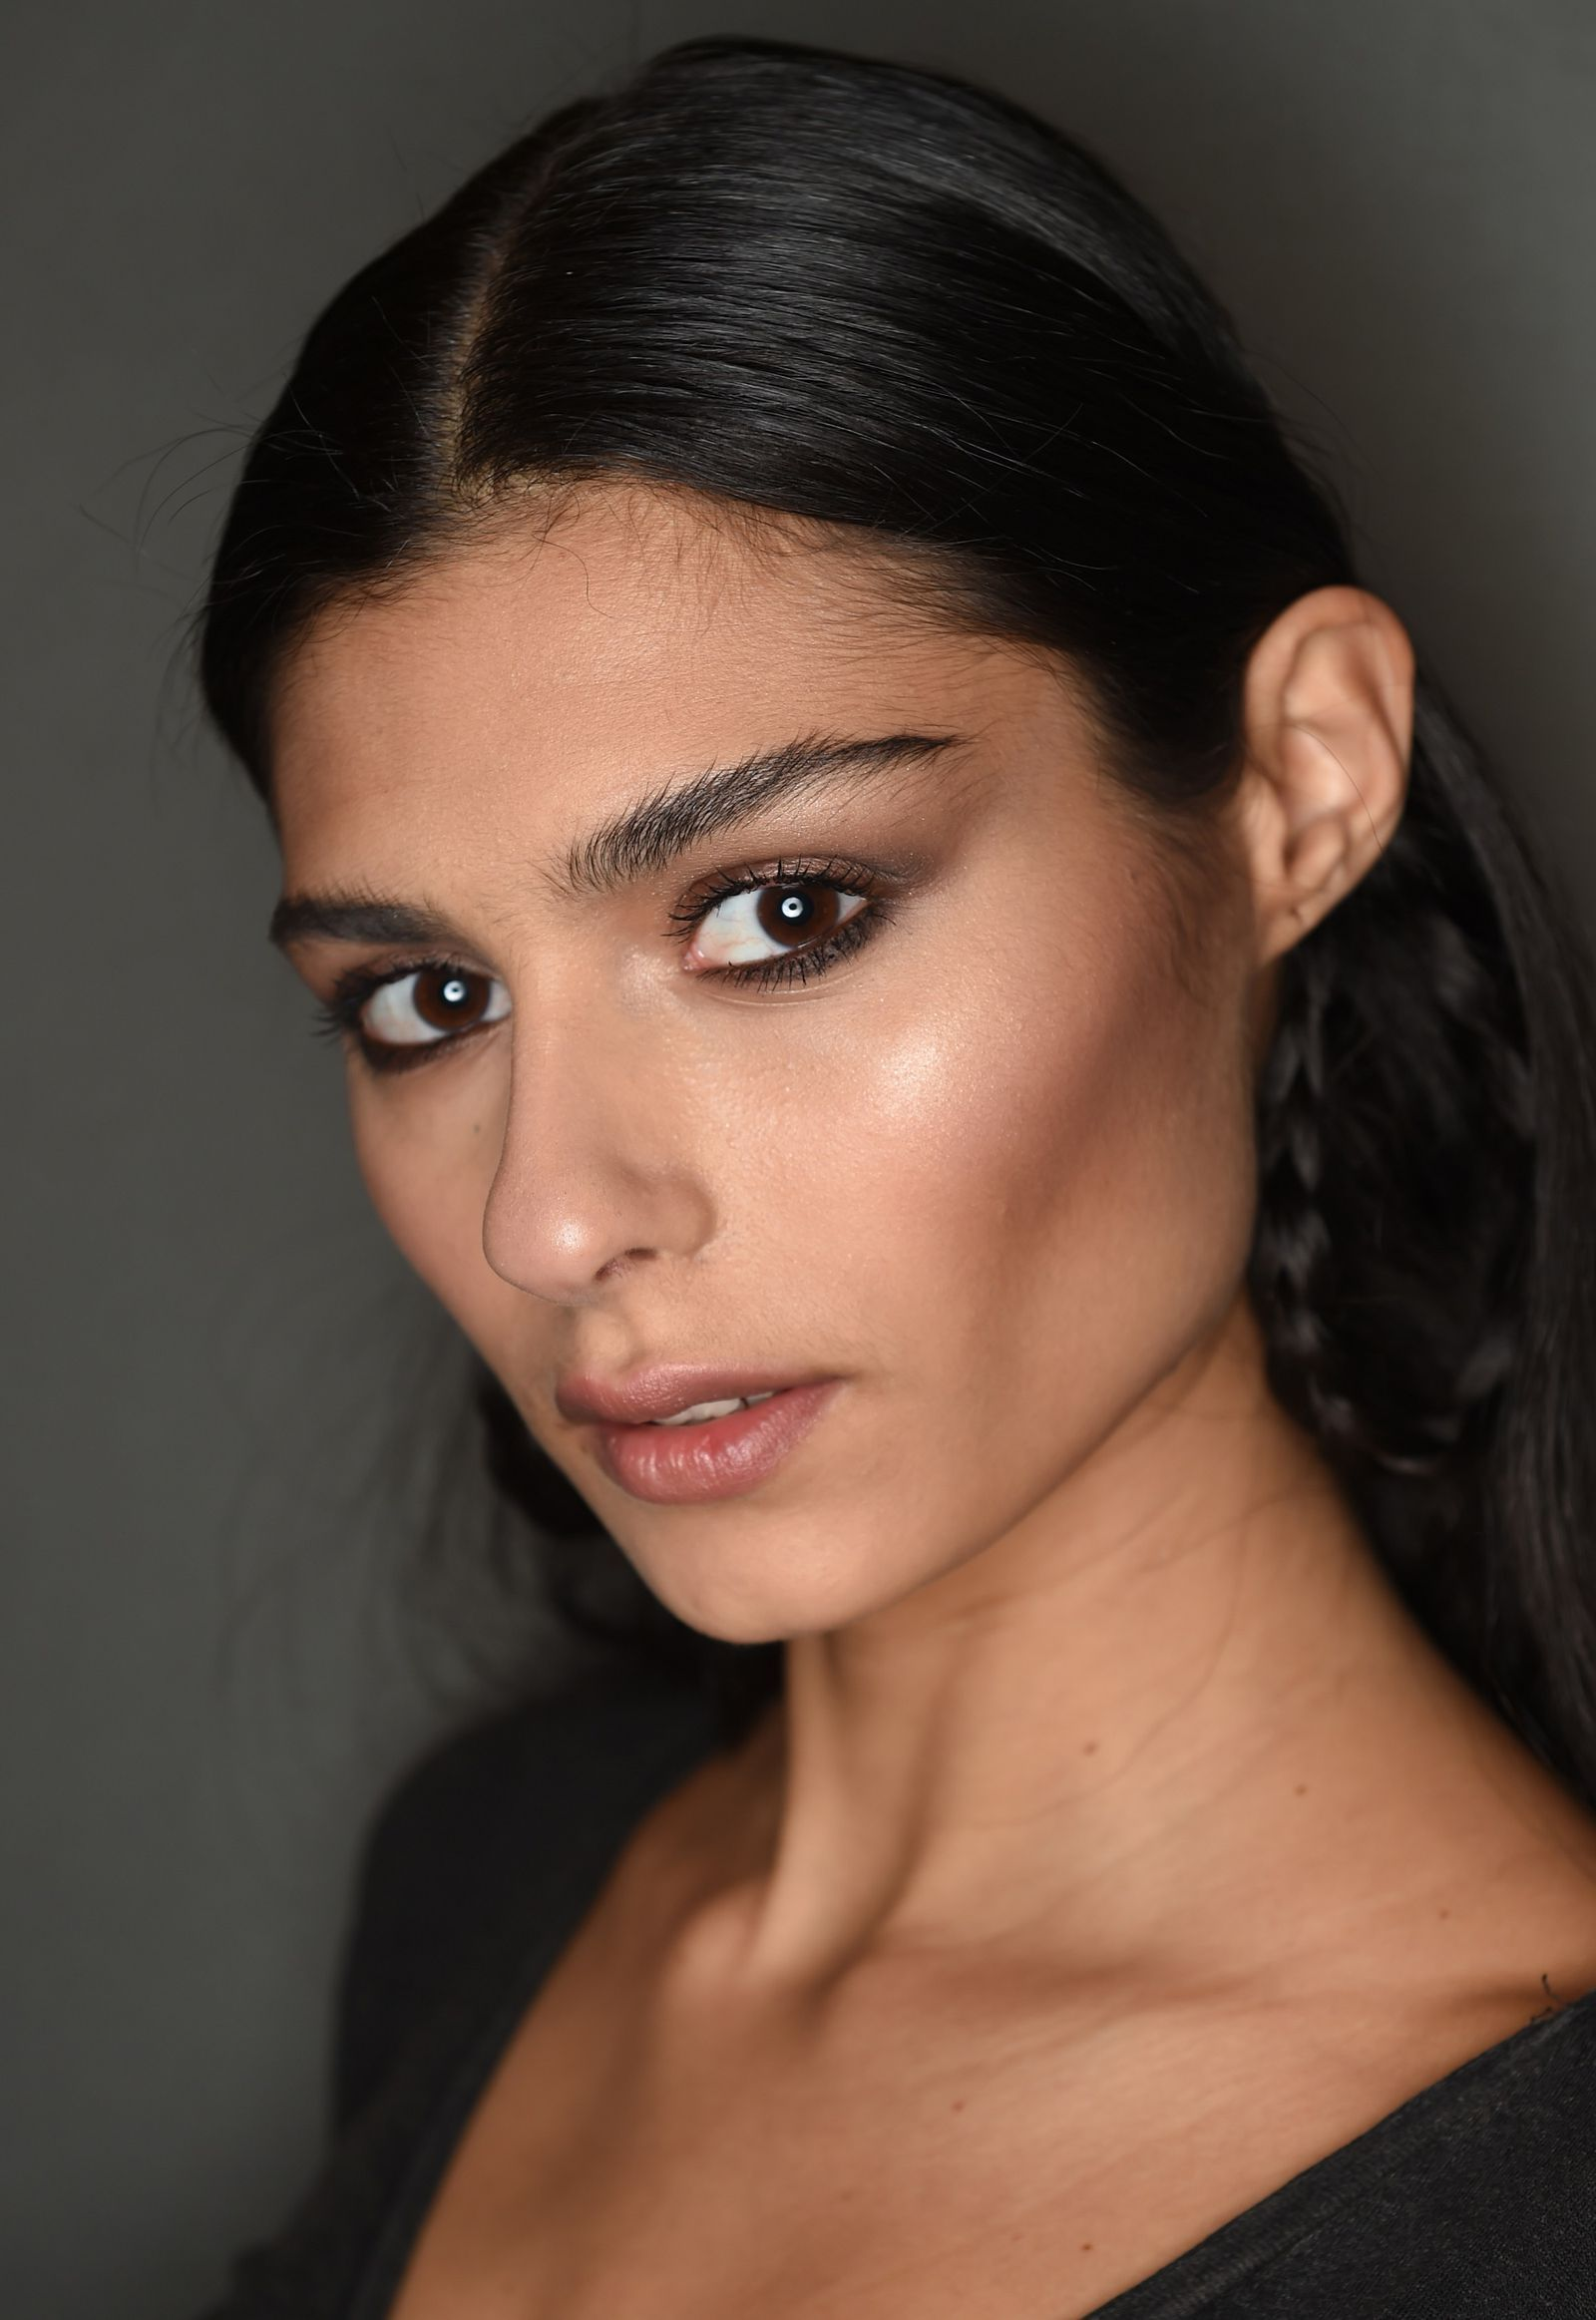 12 Of The Best Blushers For Olive Skin Tones in 2020 (With